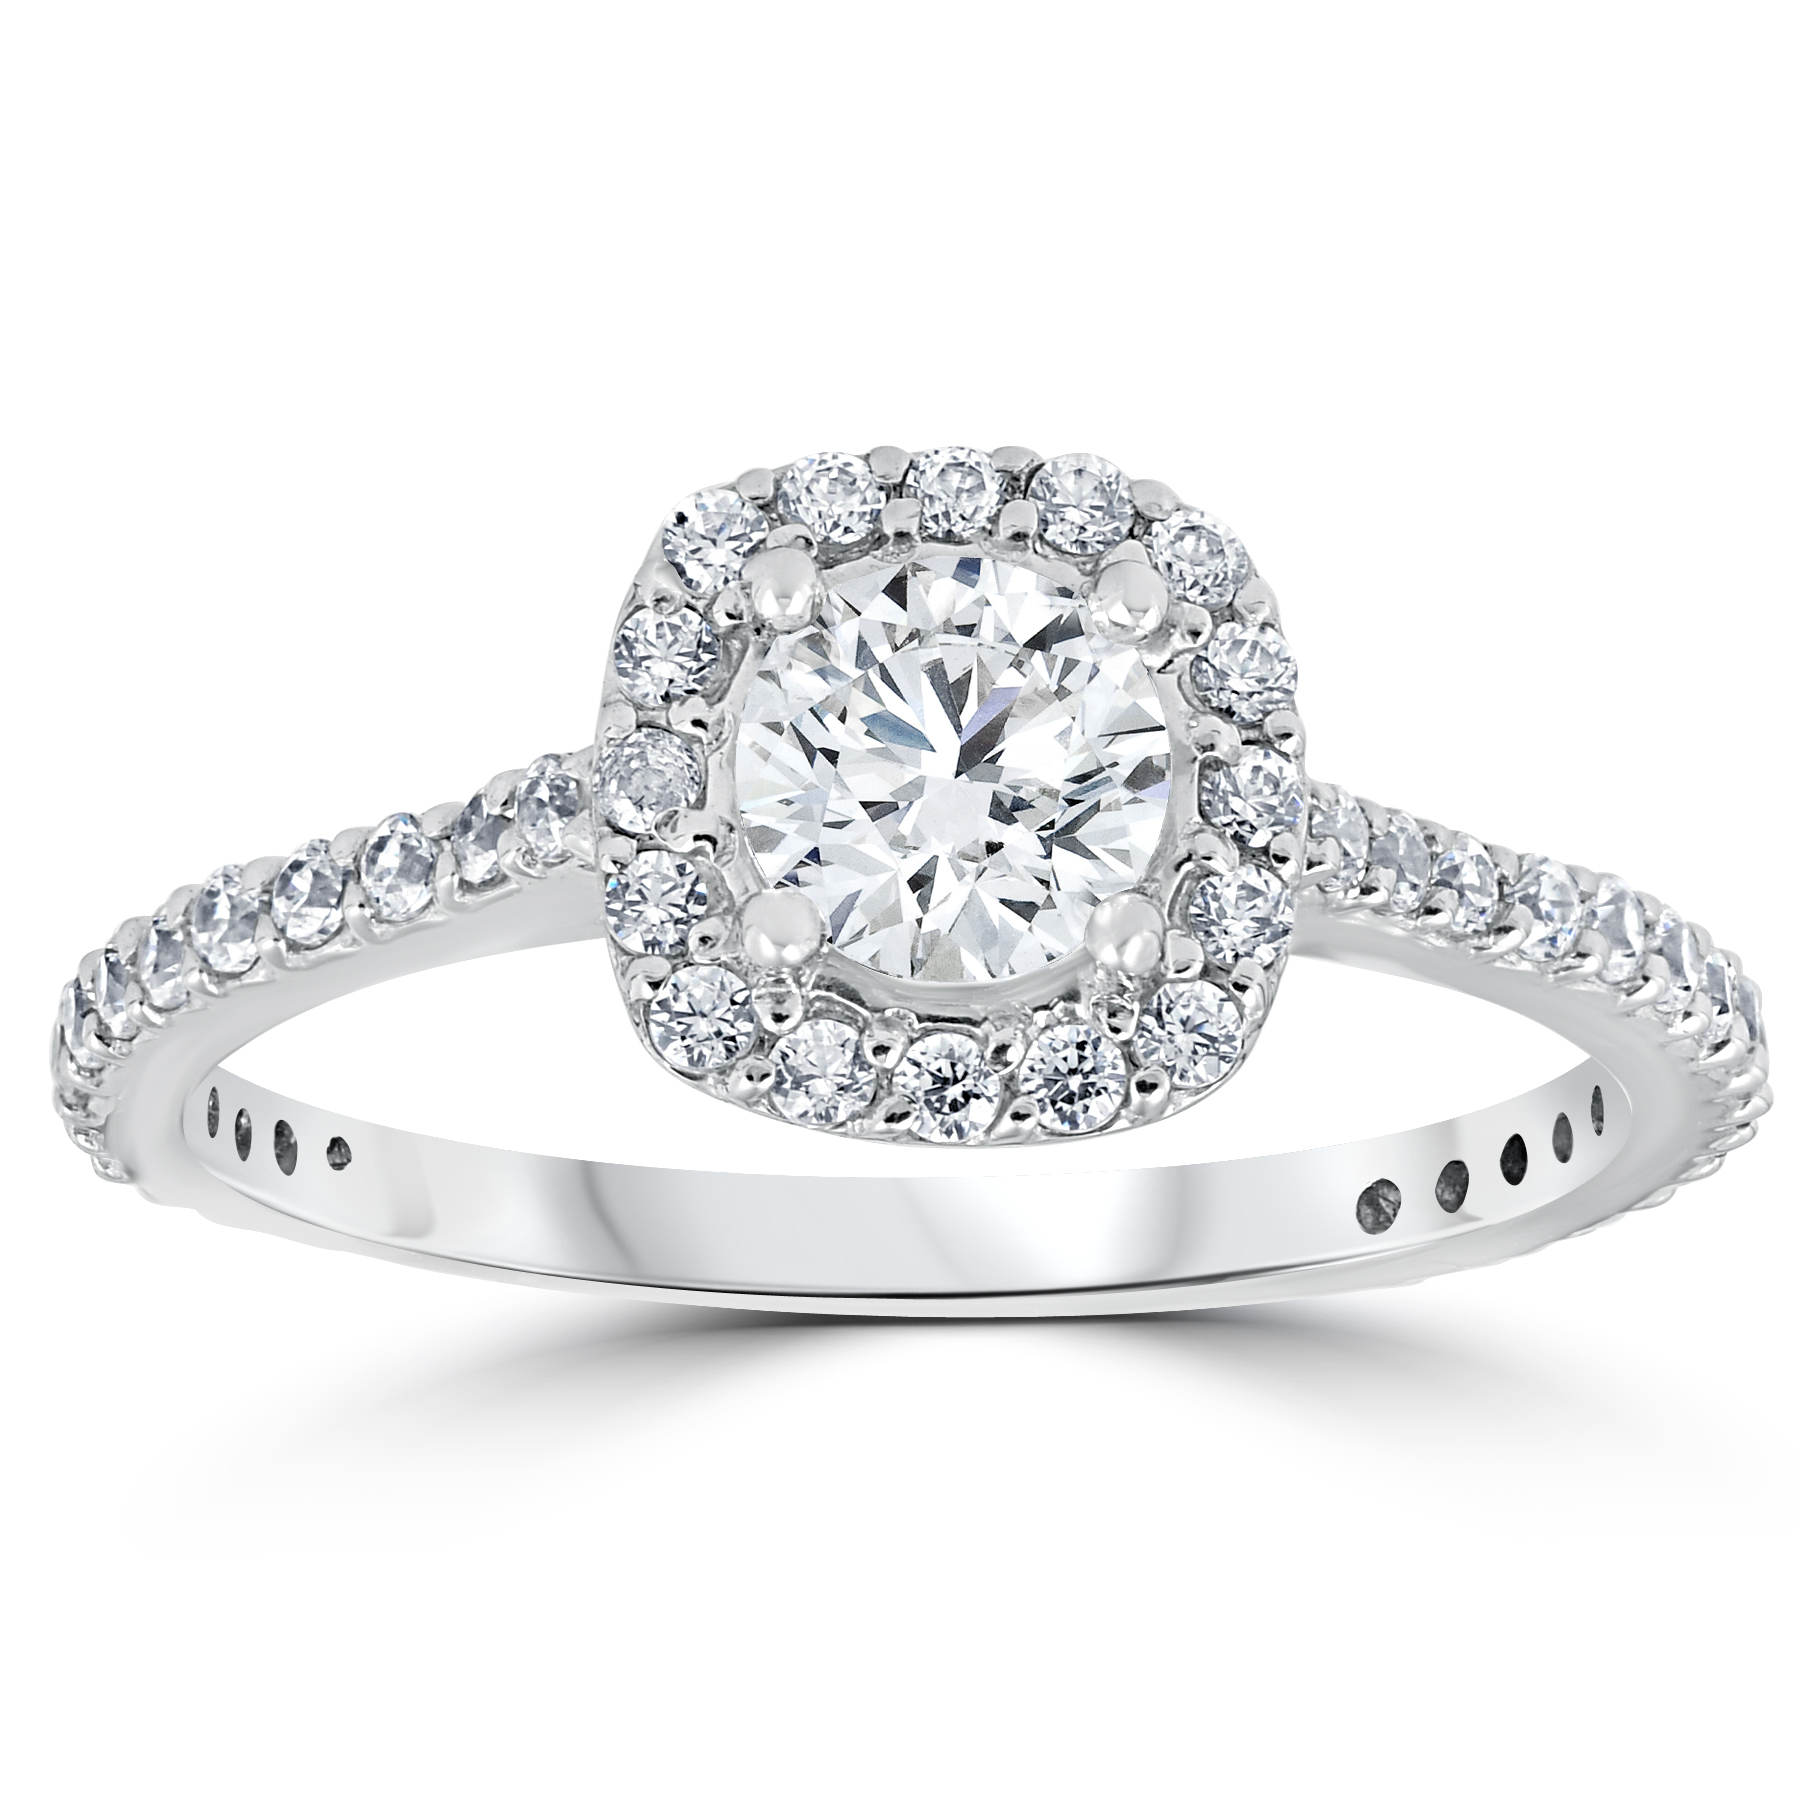 1 1 5ct TDW Cushion Halo Round Diamond Engagement Ring White Gold Solitaire by Pompeii3